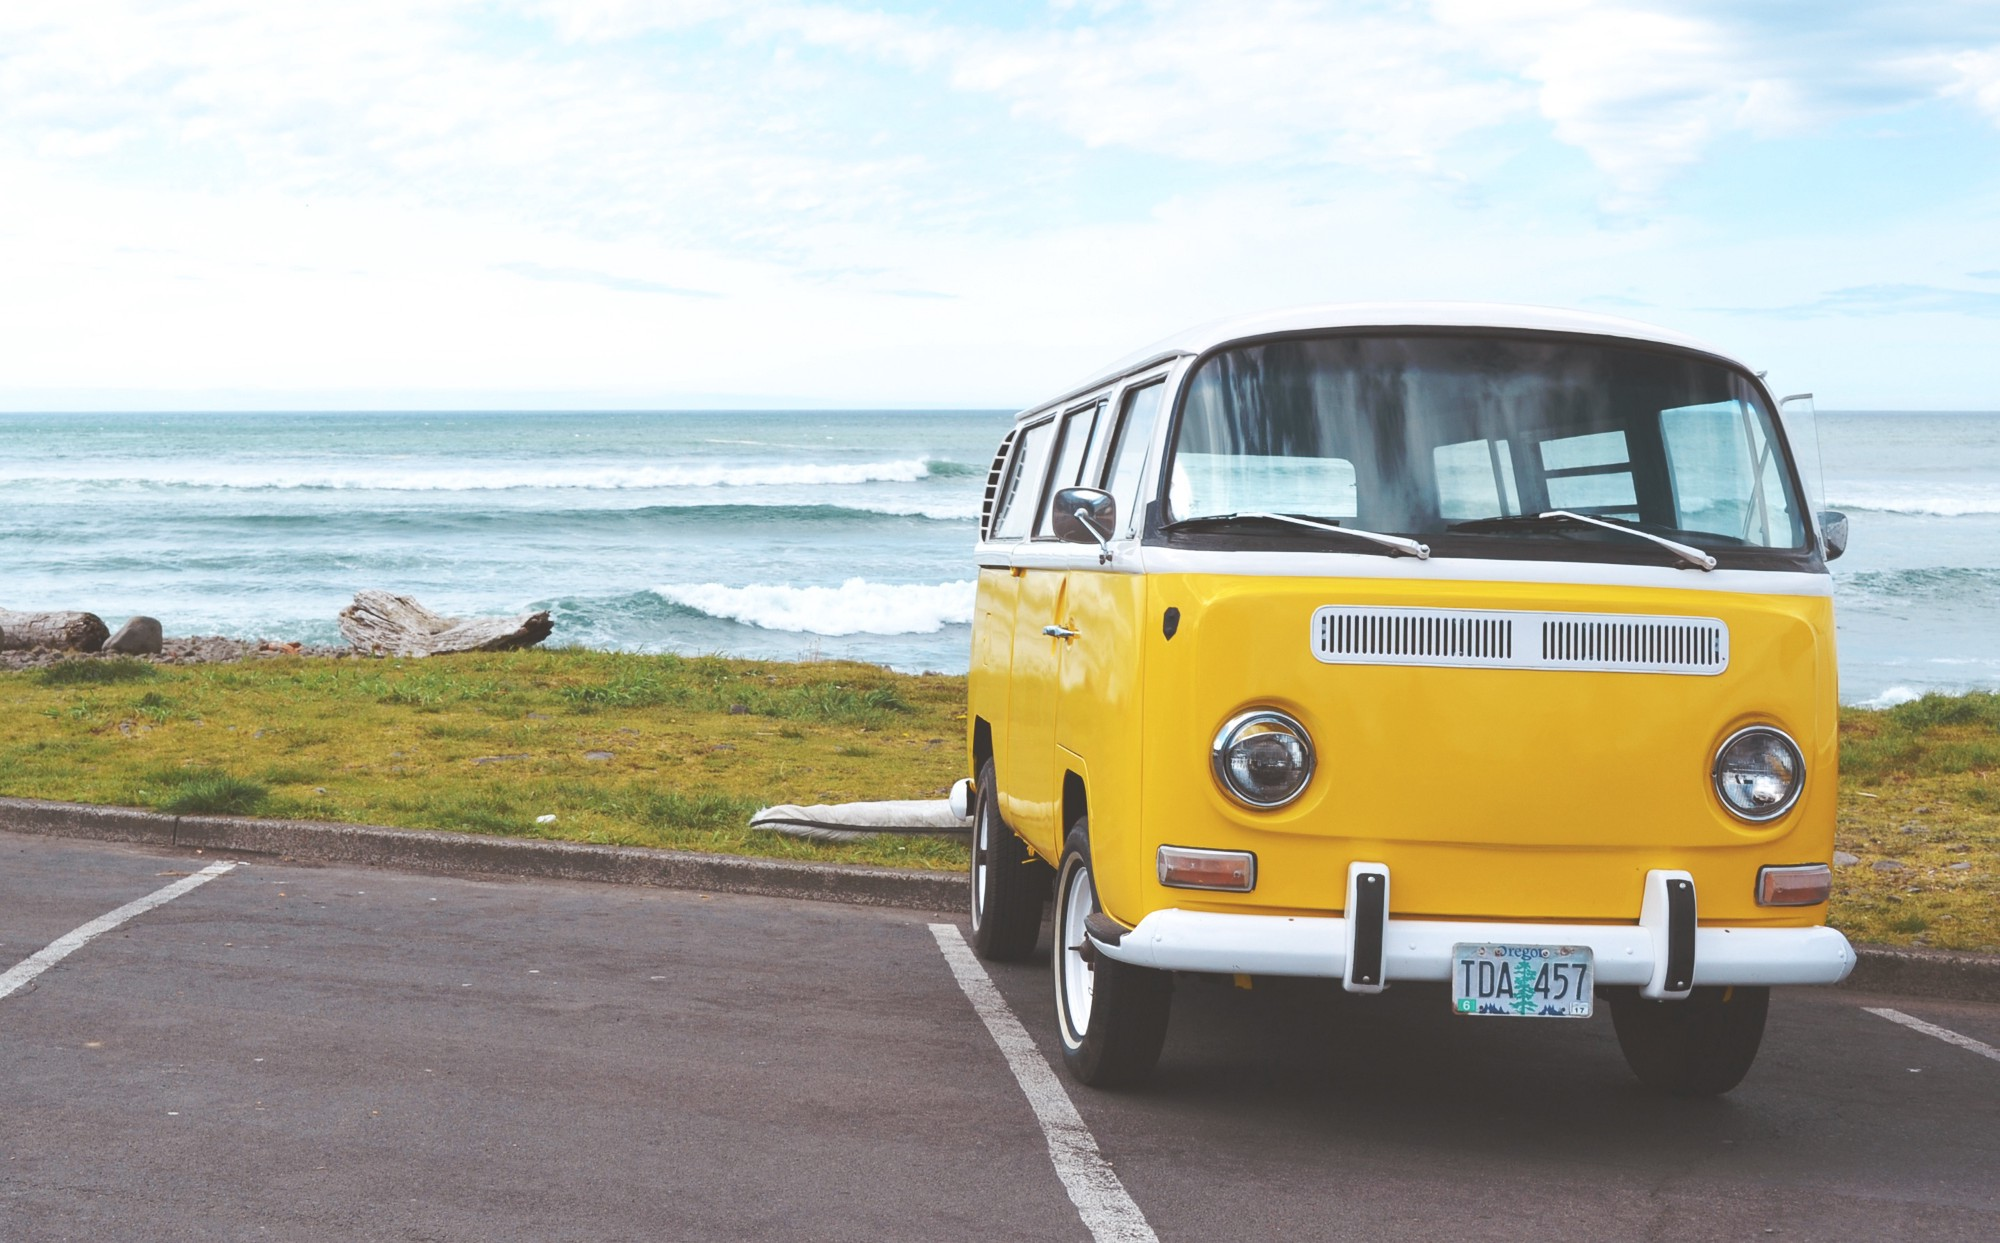 20 Brilliant Everyday Hacks To Simplify Your Life Cut The Noise And Ares Maroon Nokha Sneakers Women 36 I Have Long Been A Believer In Living Simply As Youngster Would Buy Volkswagen Magazines With Dream Of One Day Vw Camper Van